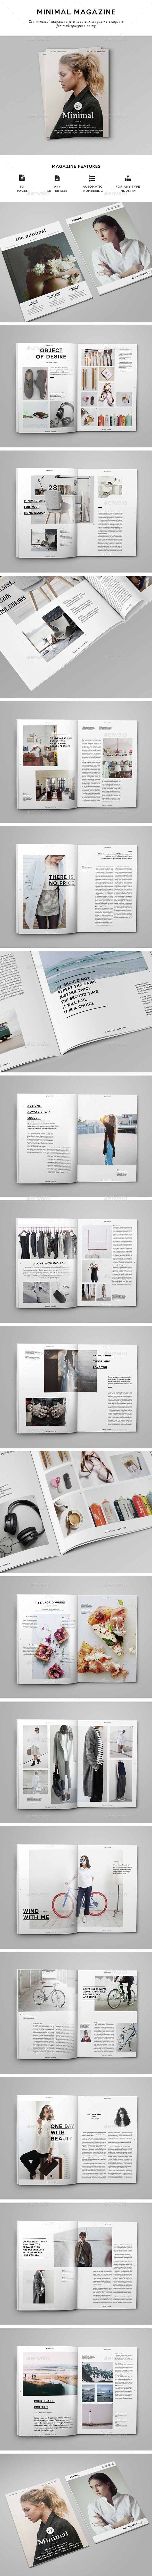 Clean Magazine 53 Pages - Magazines Print Templates